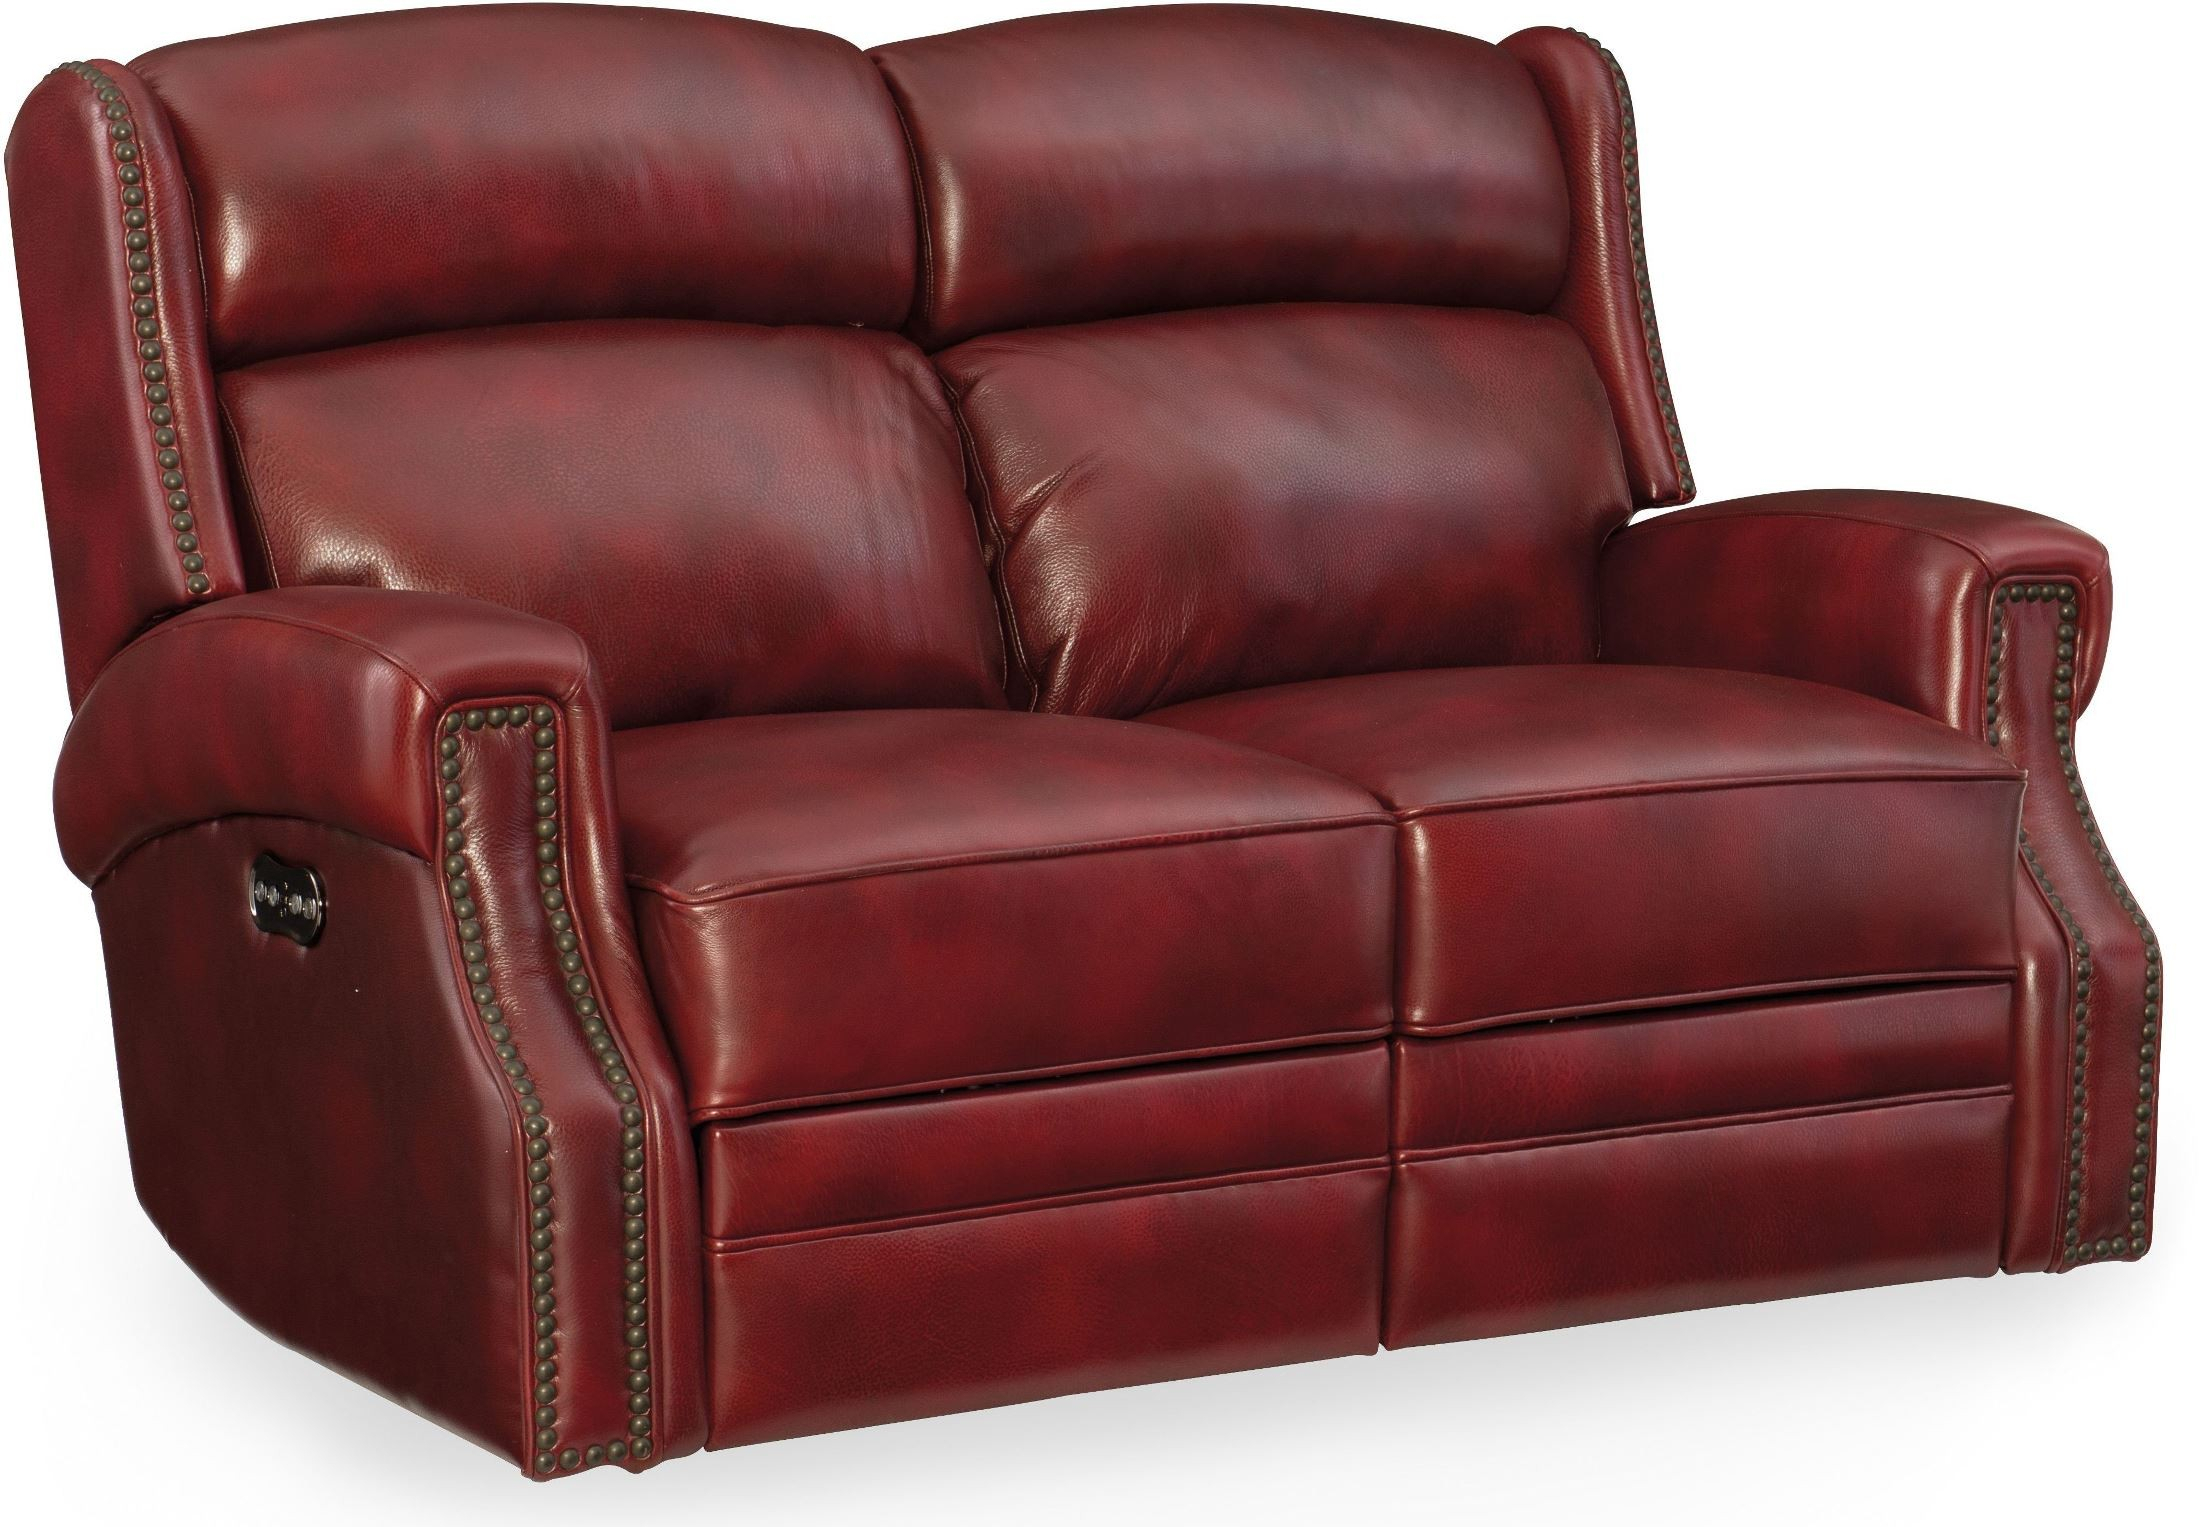 Carlisle Red Leather Power Reclining Loveseat With Power Regarding Nolan Leather Power Reclining Sofas (View 1 of 15)